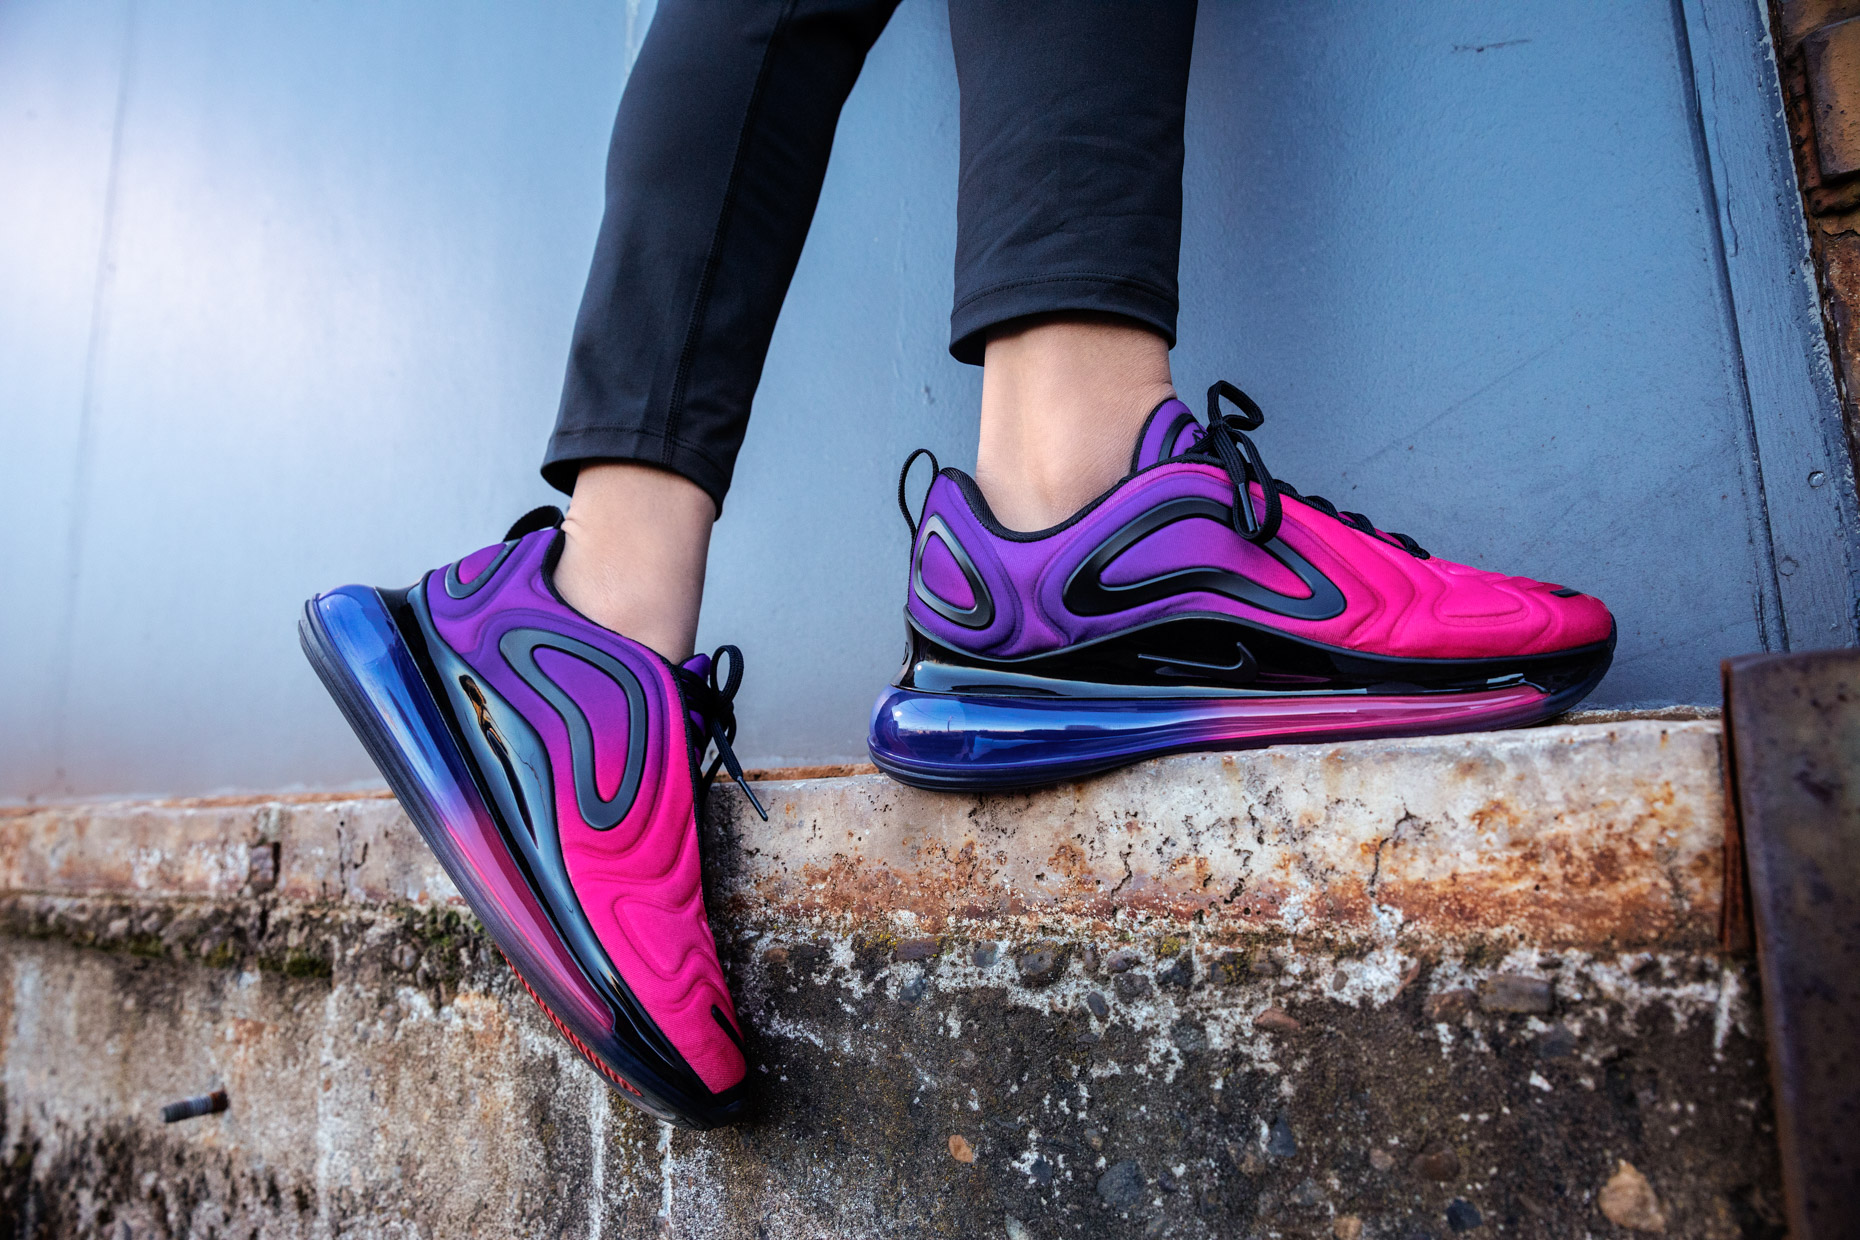 19206-01_Nike_NADBD_AM720_Womens_AR9293-500_2196_full